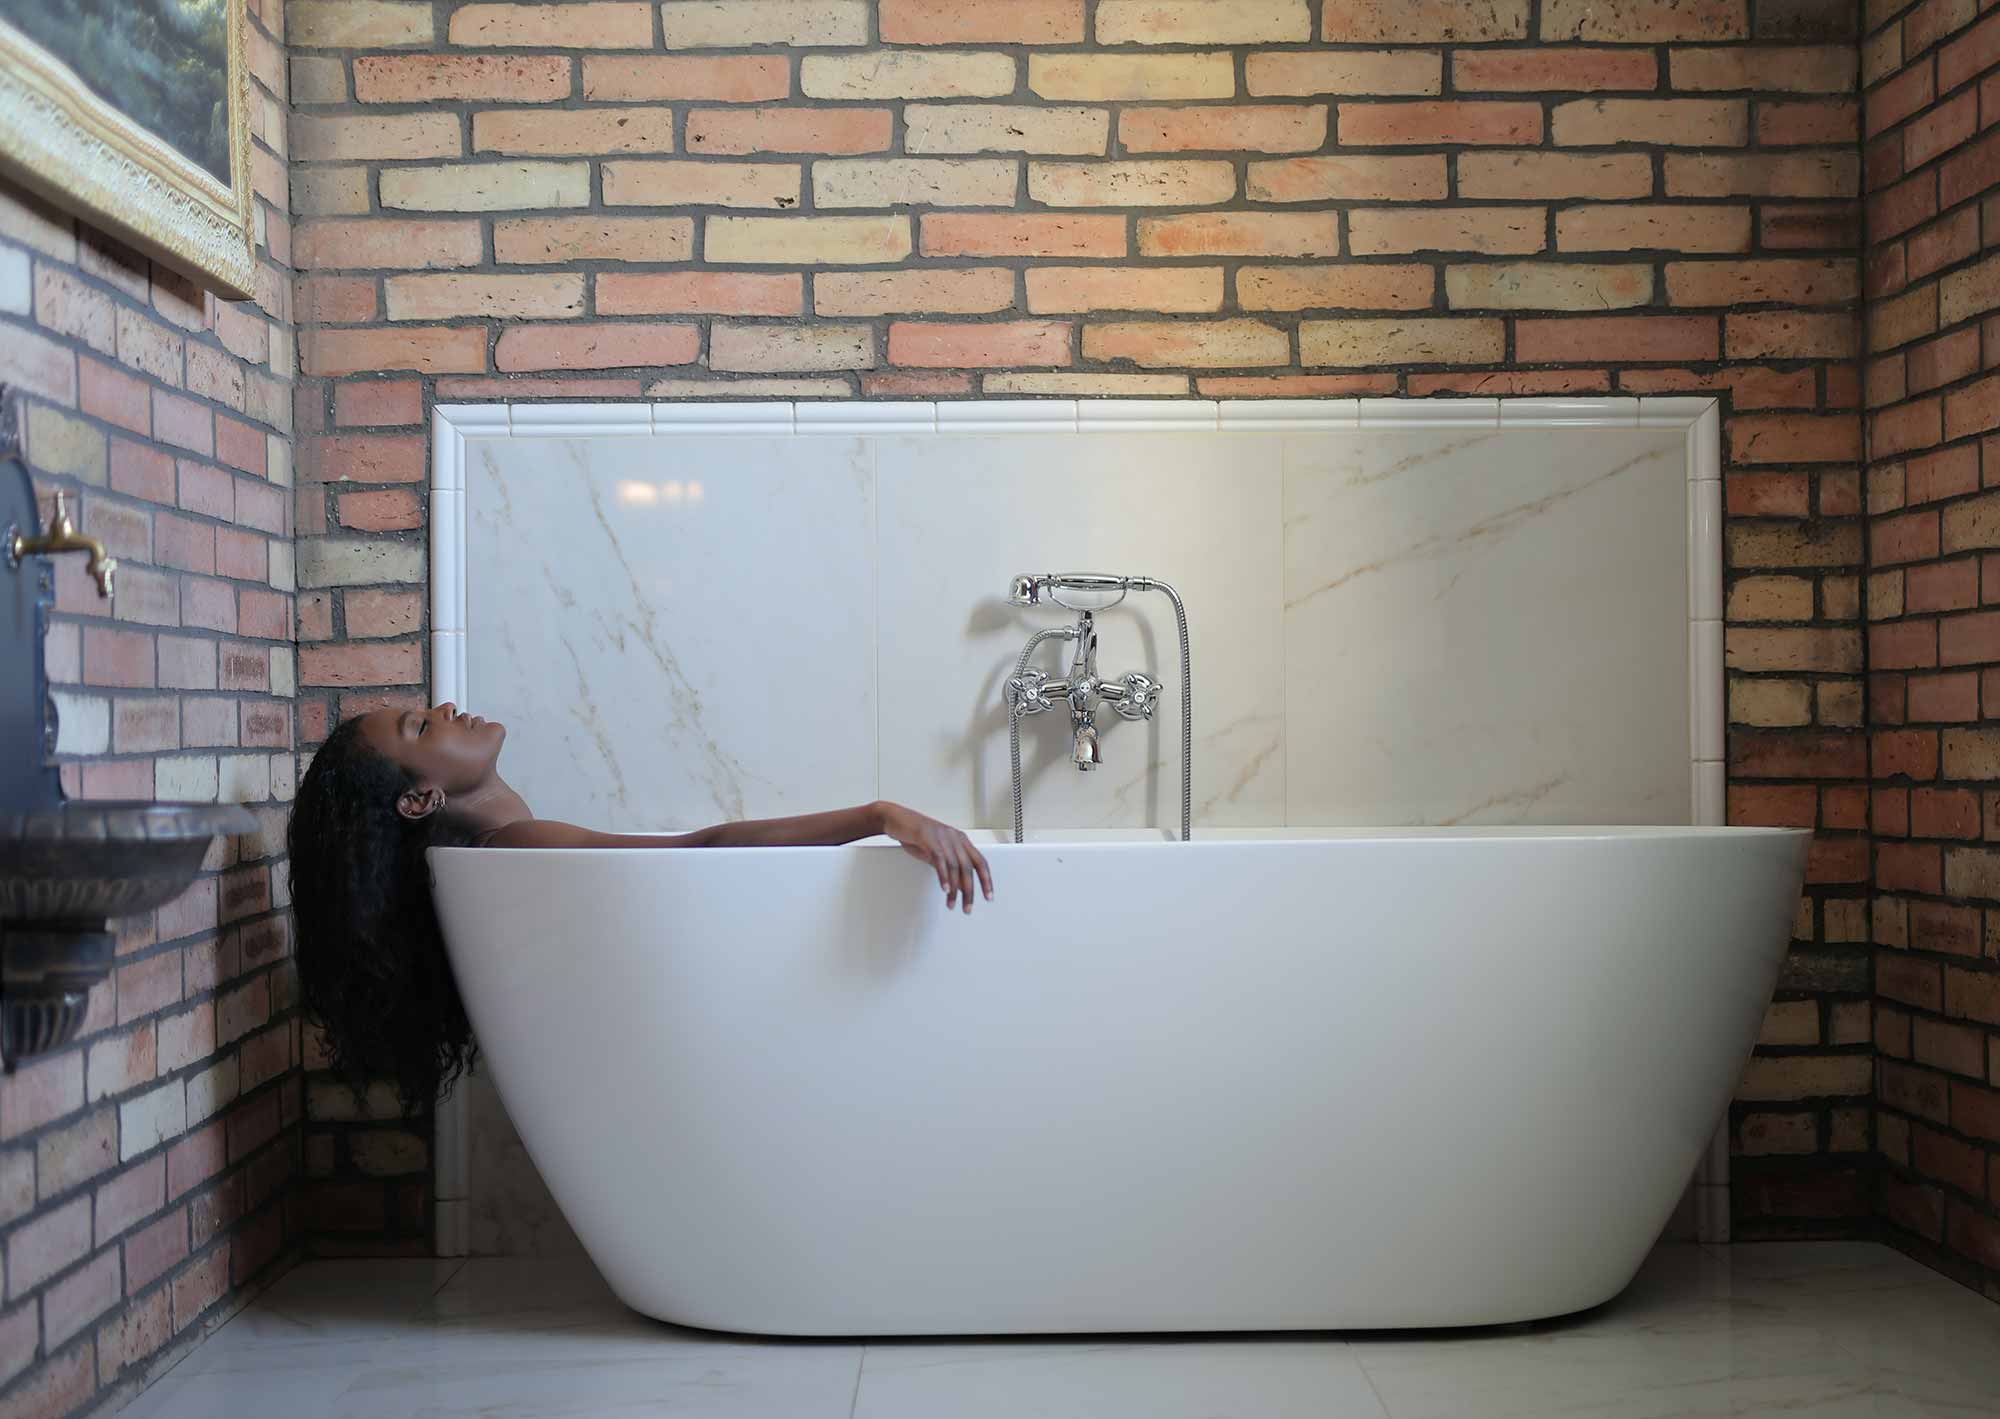 Woman relaxing in a tub